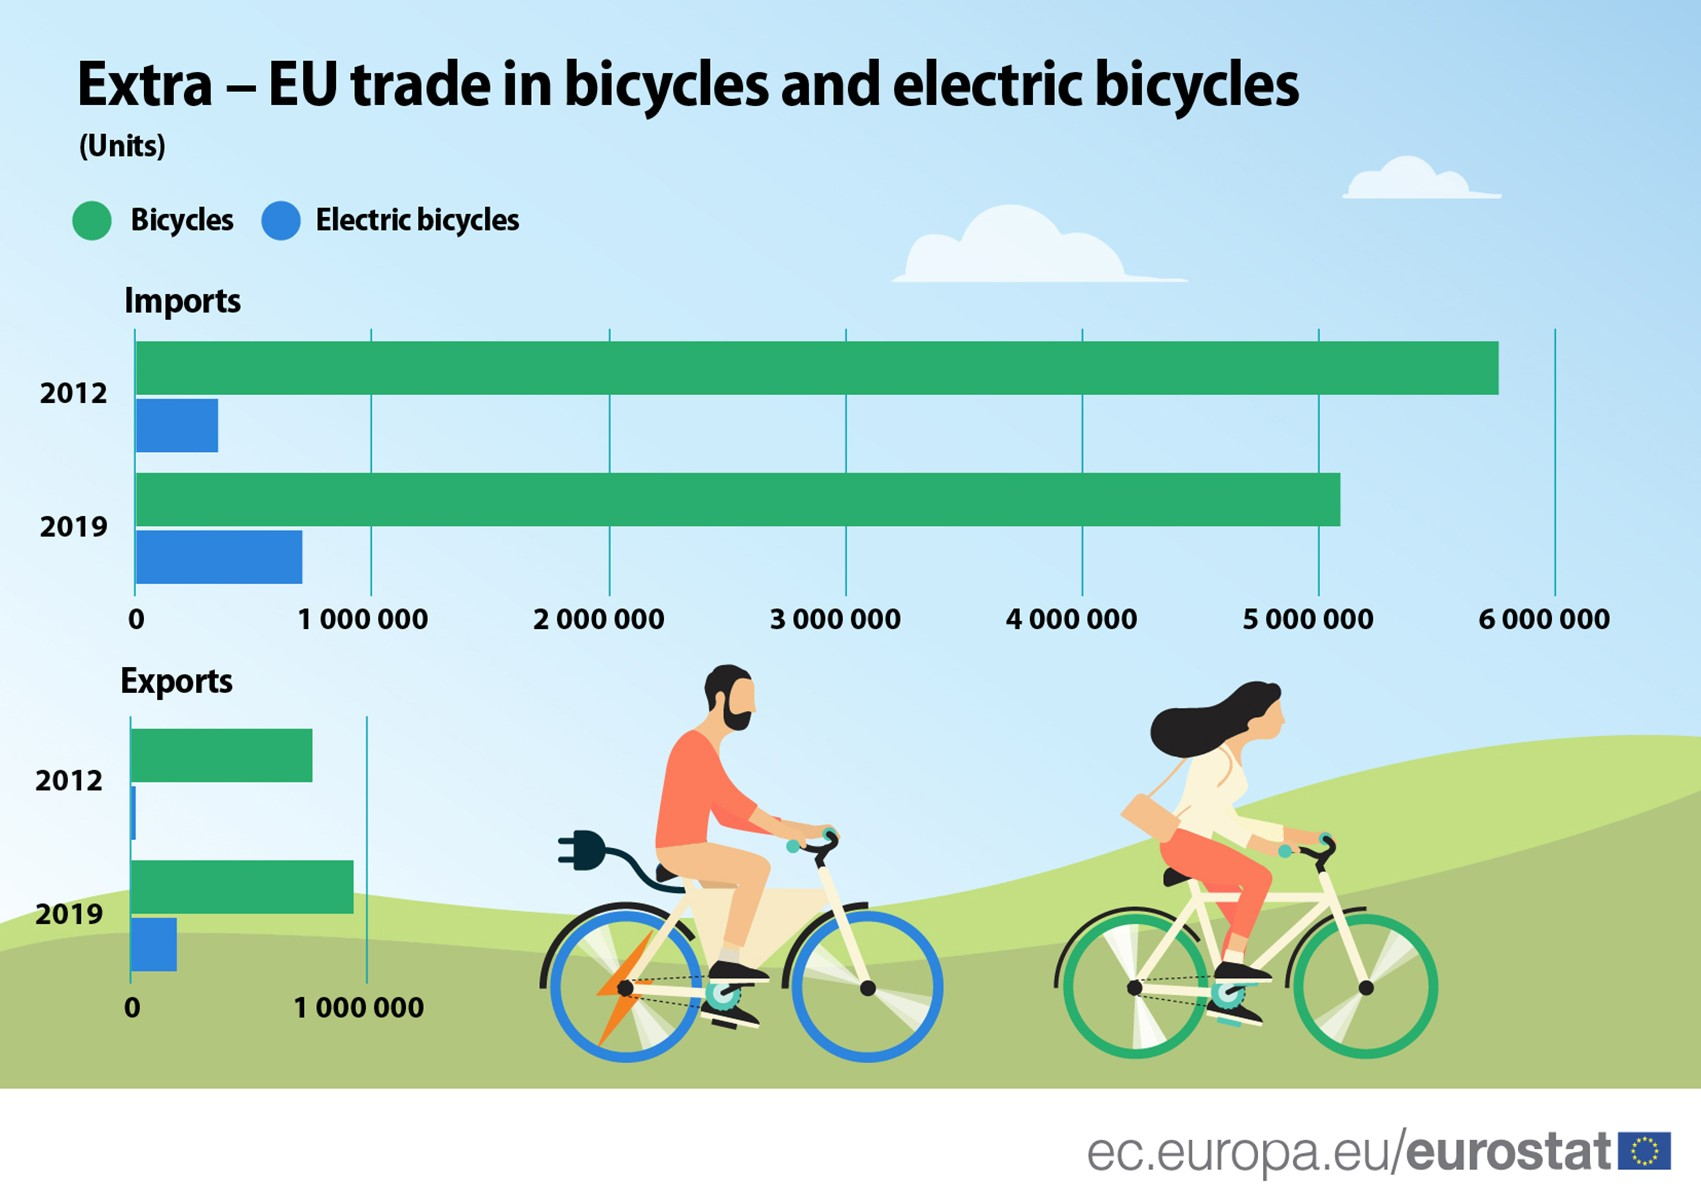 EU trade in bicycles and electric bicycles